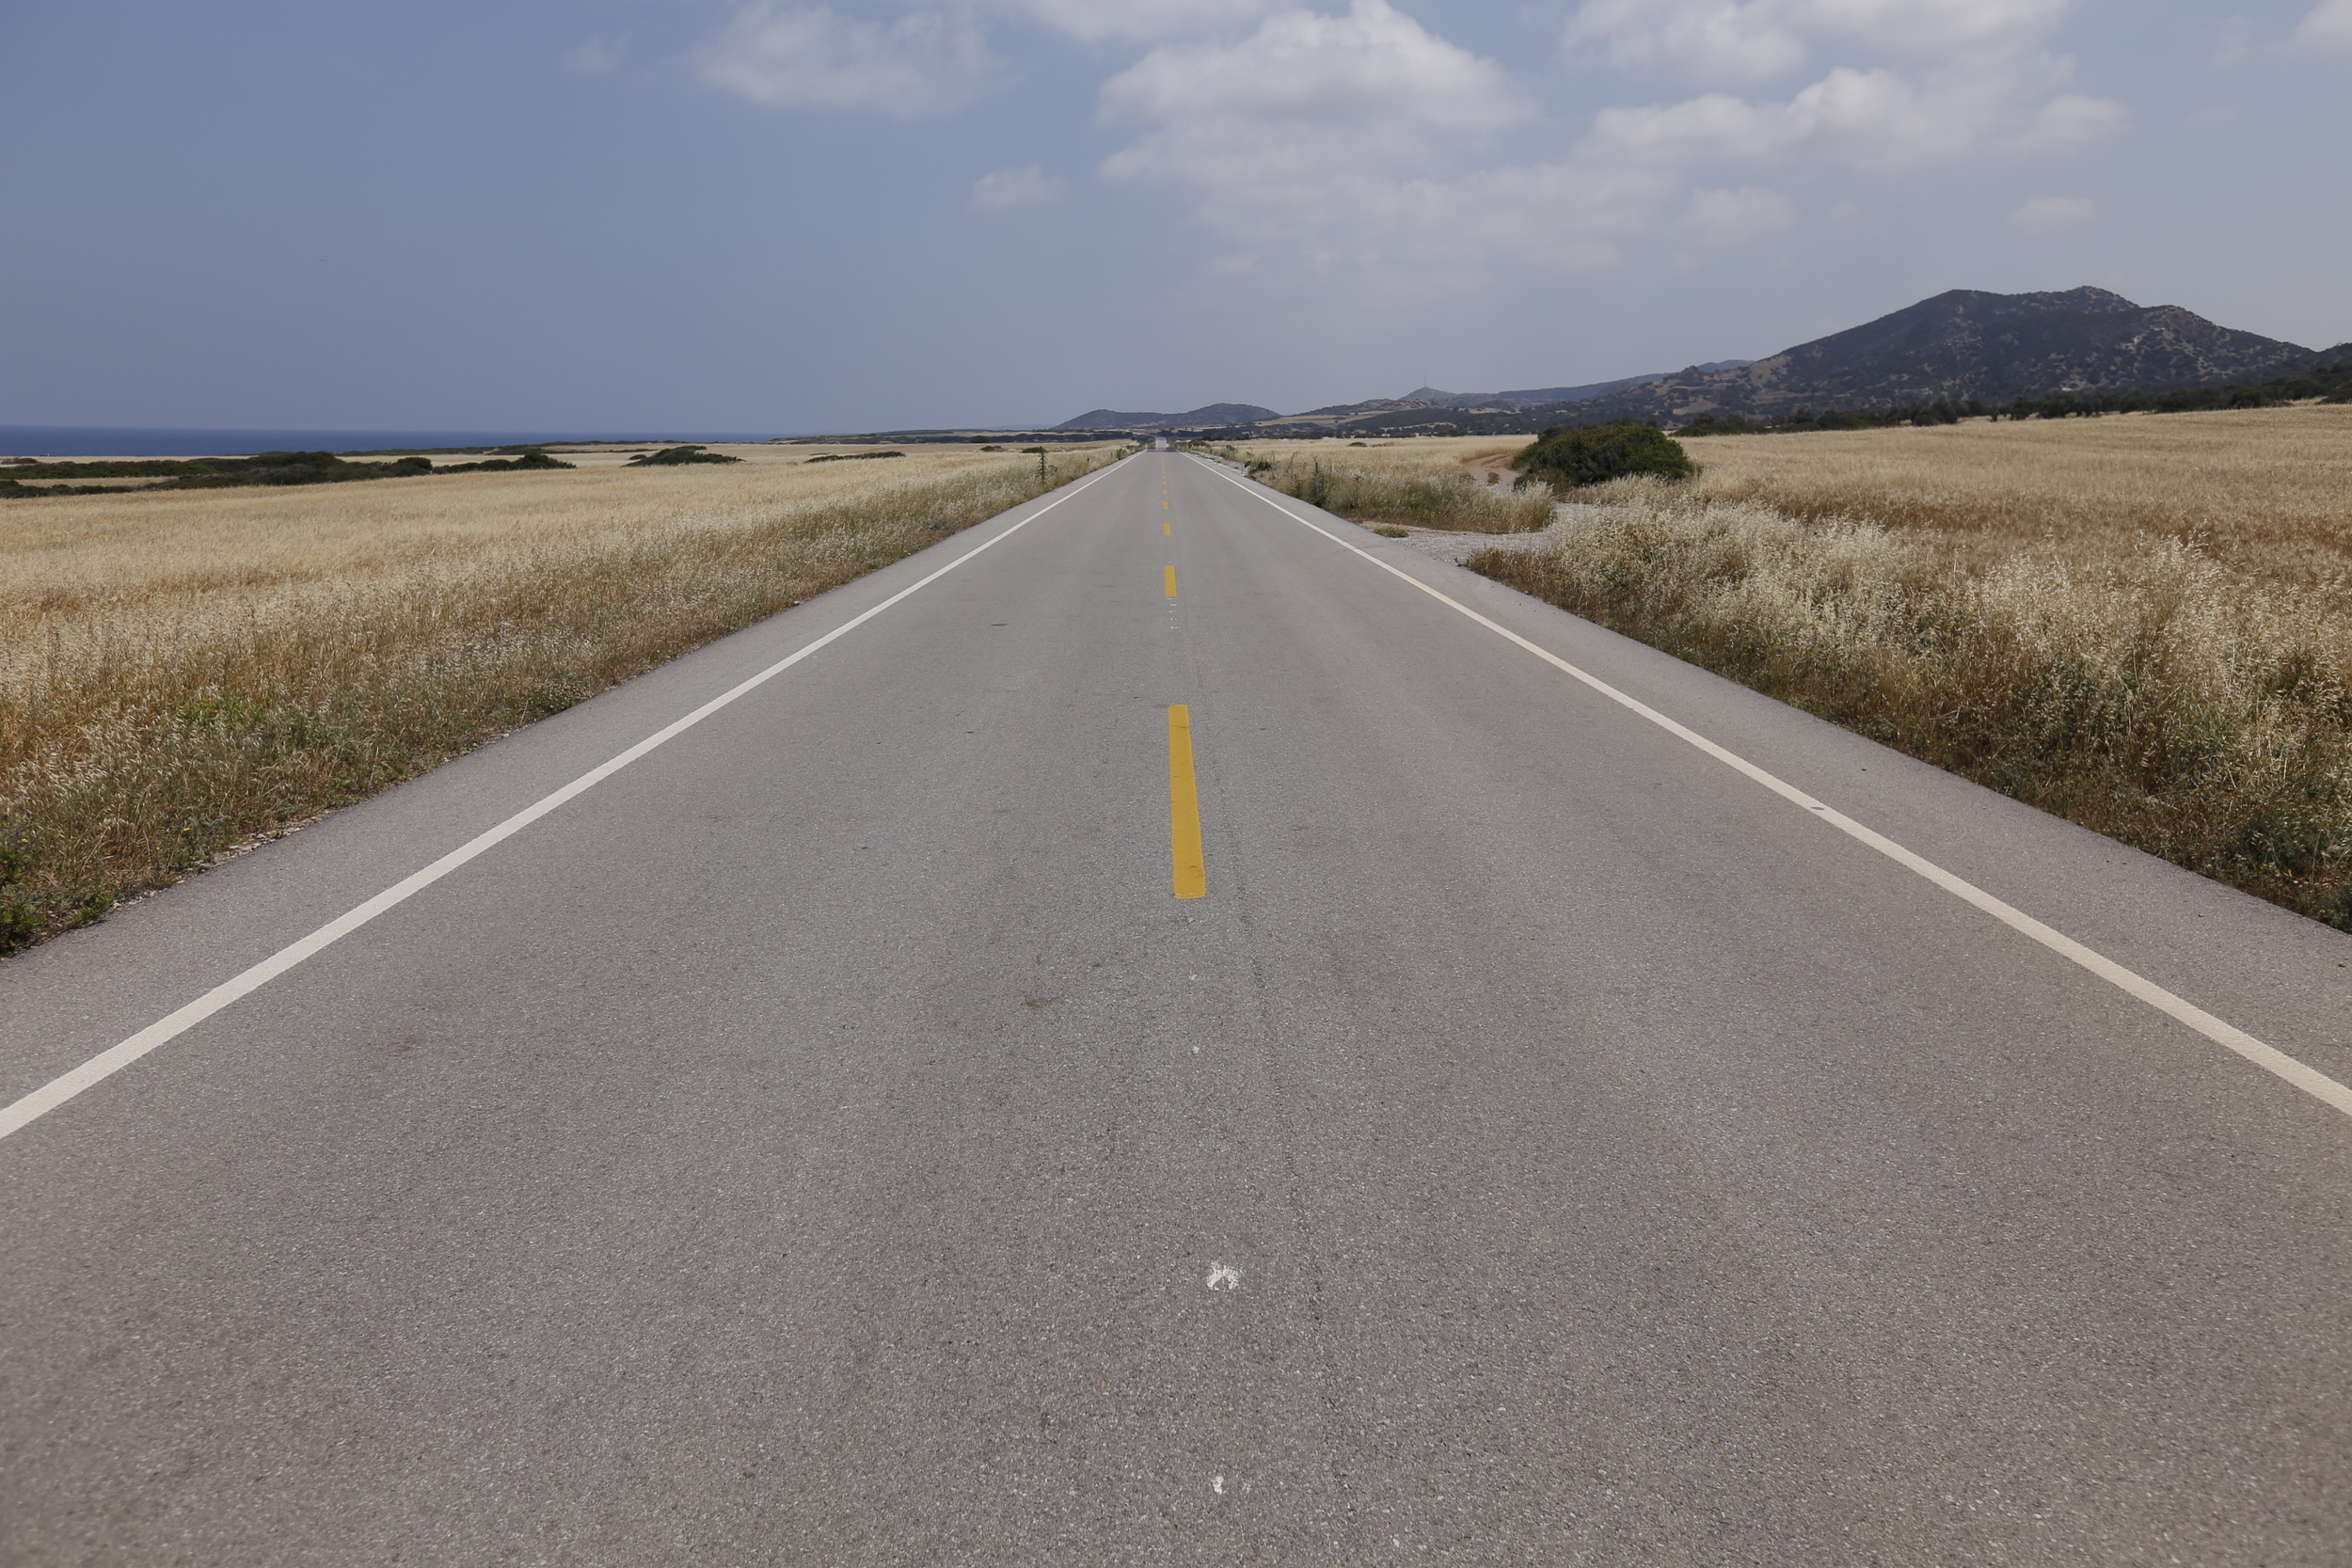 road, turkish road, north cyprus, go north cyprus, canon, canon 6d, explore, photography, photography blog, jack macgowan photographer, travel journalist, cyprus, north cyprus, bikepacking, bicycle touring apocalypse, bicycle touring, cycle touring